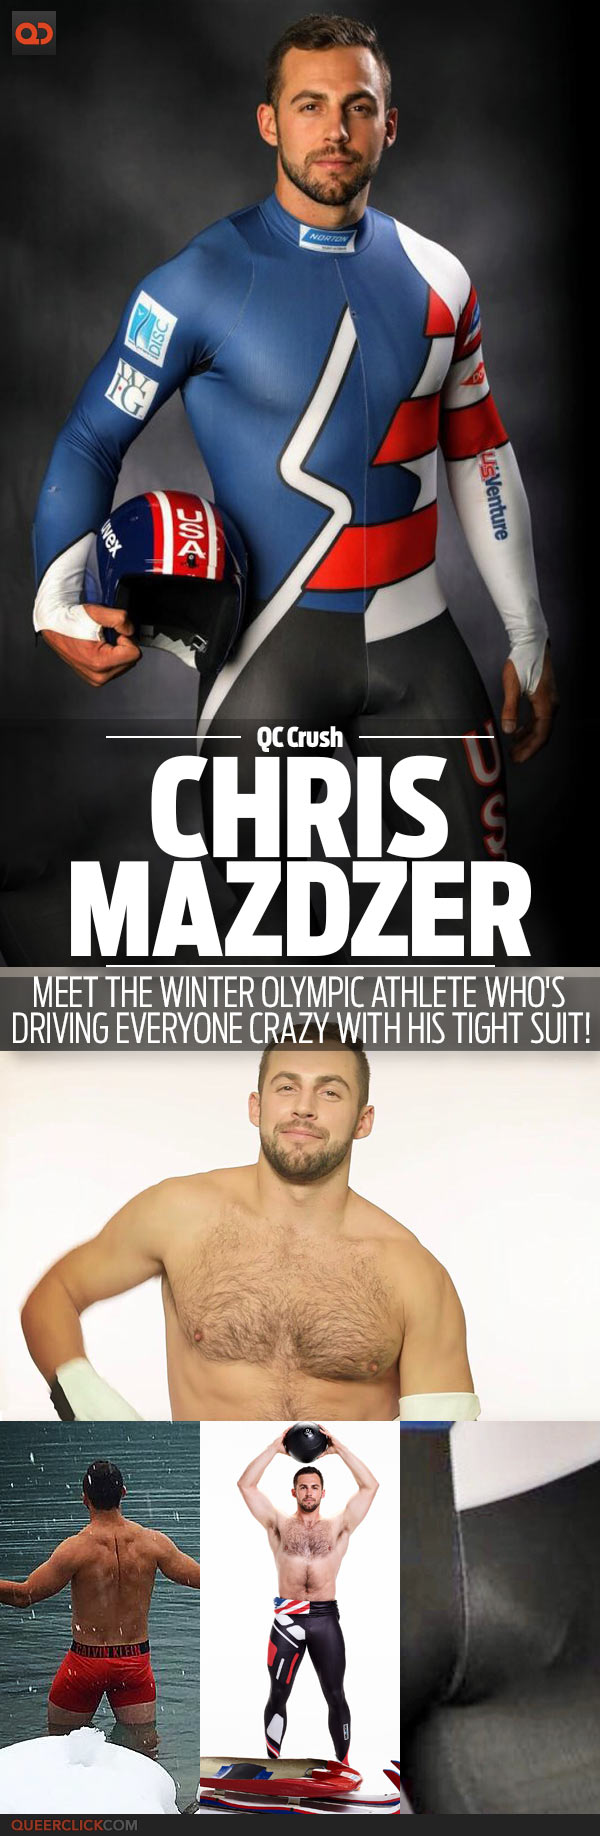 QC Crush: Chris Mazdzer, Meet The Winter Olympic Athlete Who's Driving Everyone Crazy With His Tight Suit!